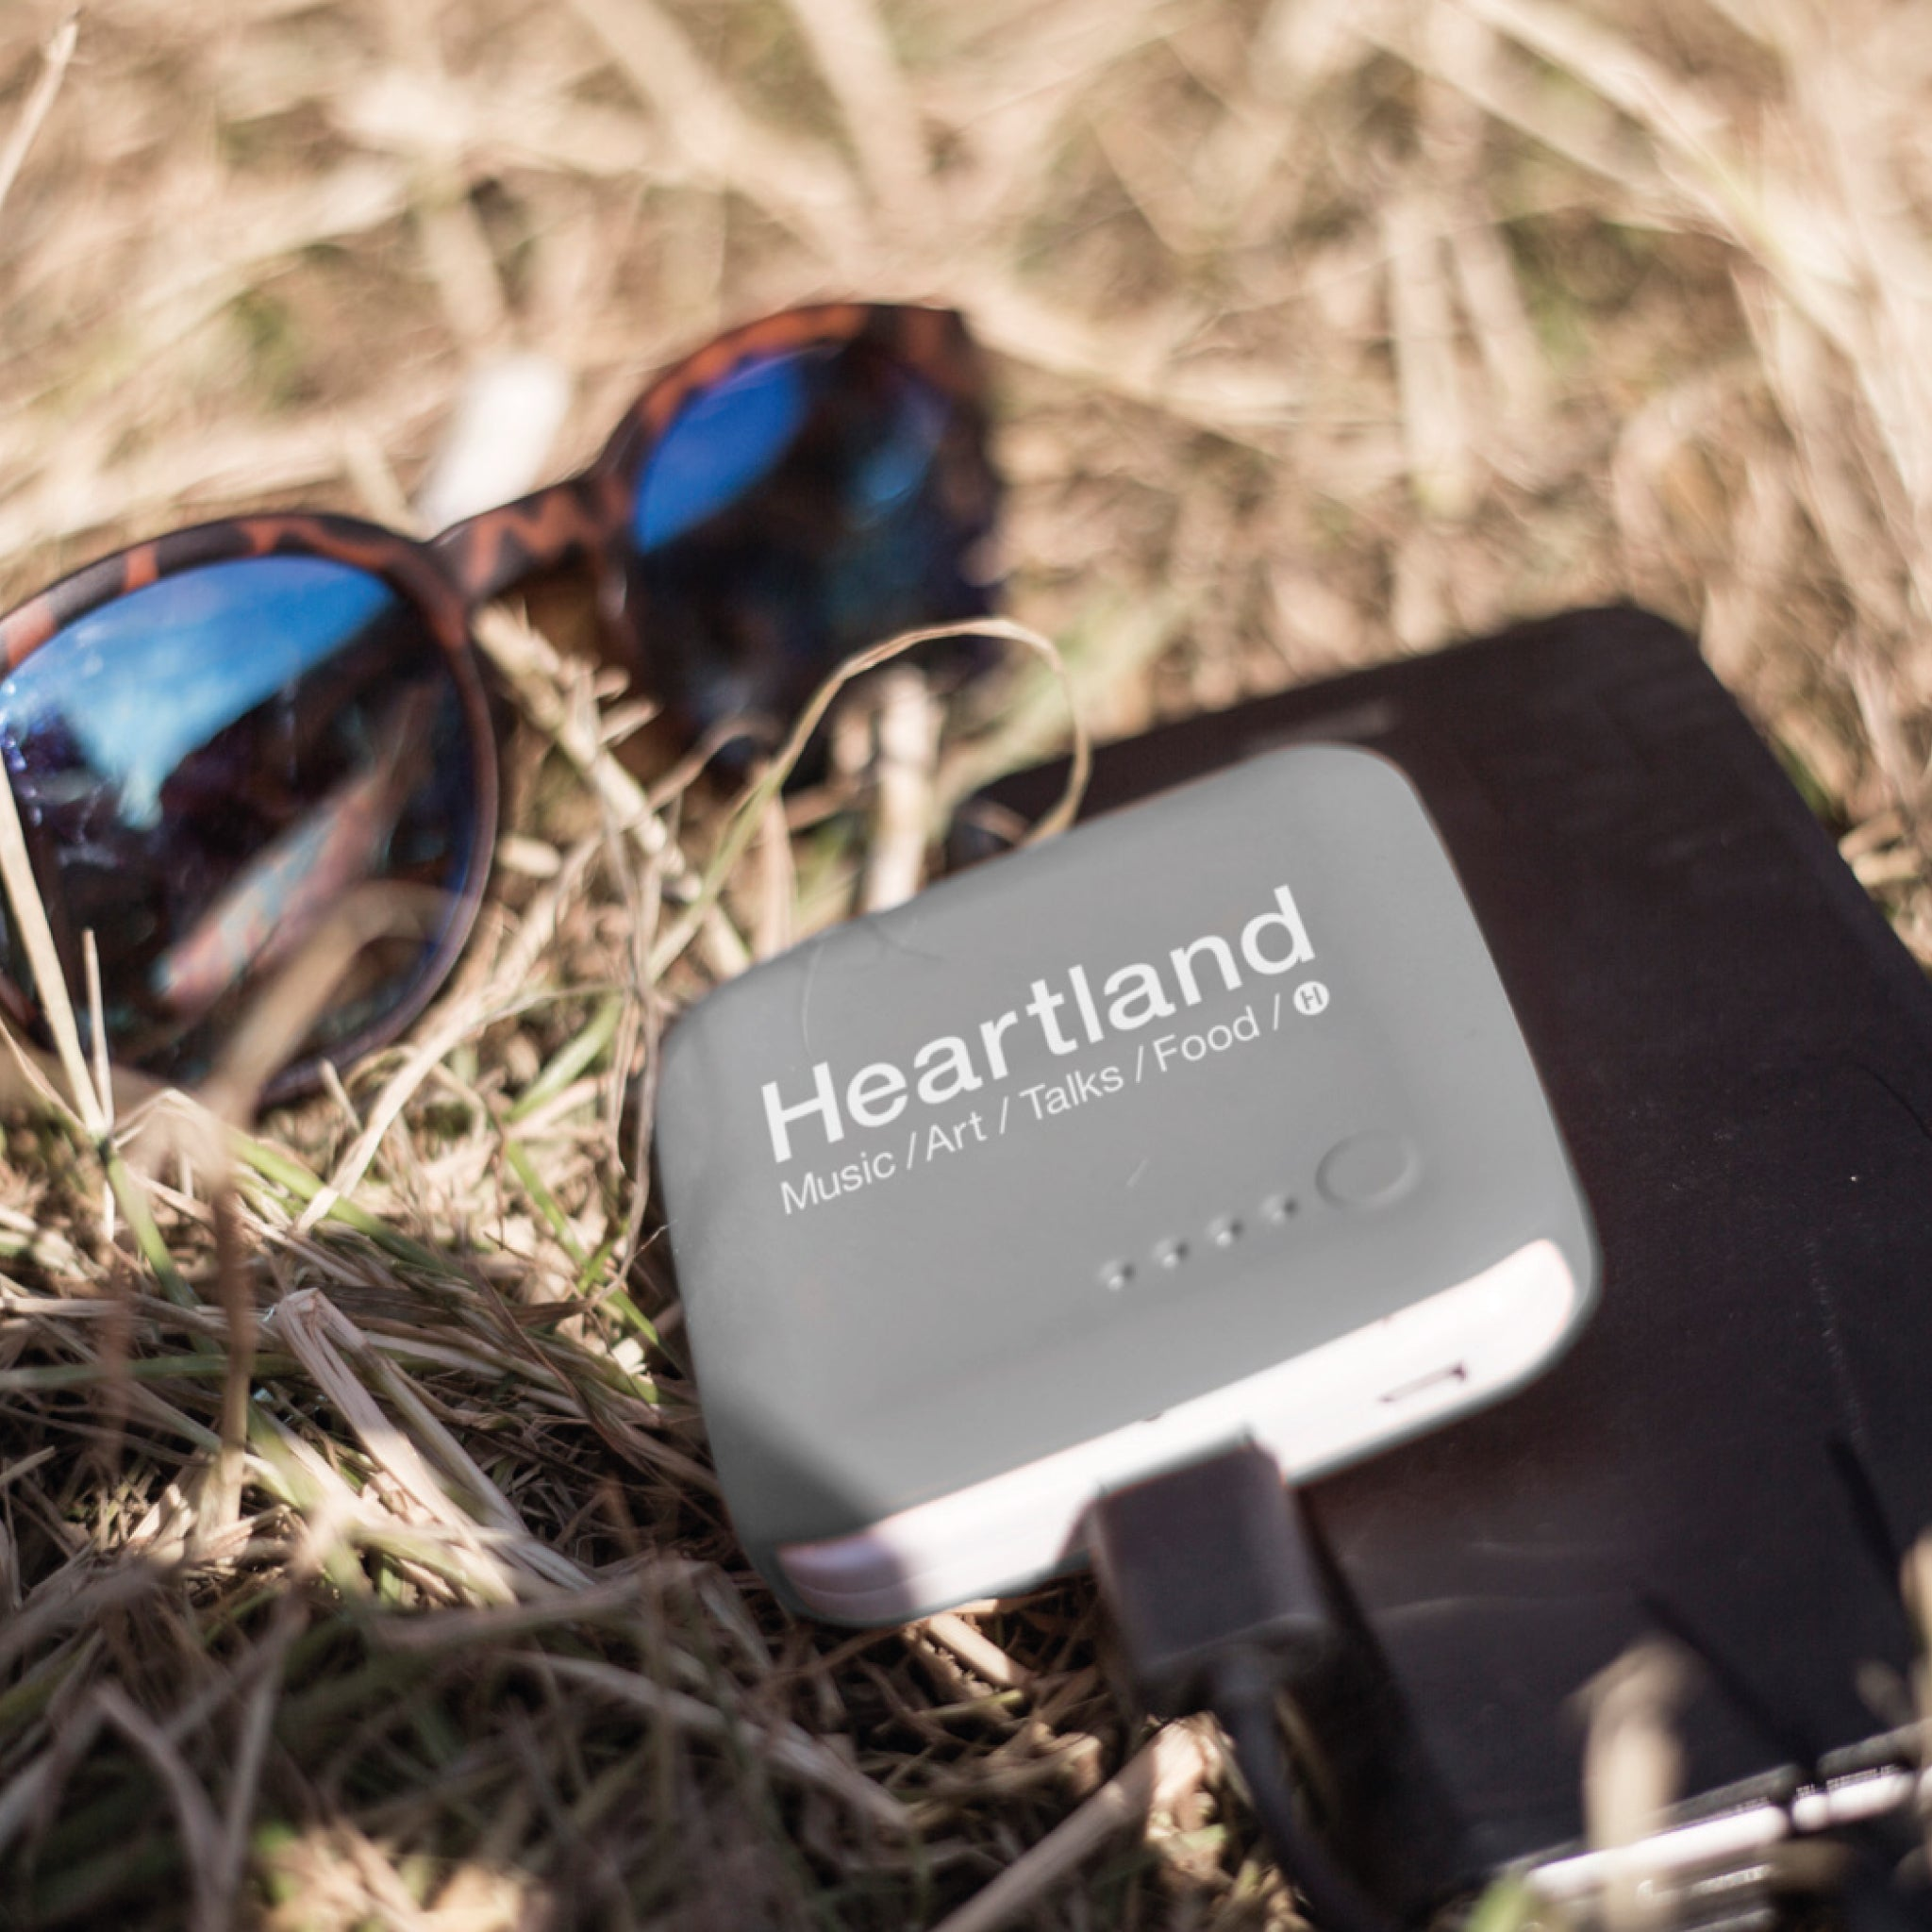 Heartland Sleeve (Passer kun til pocket charger)